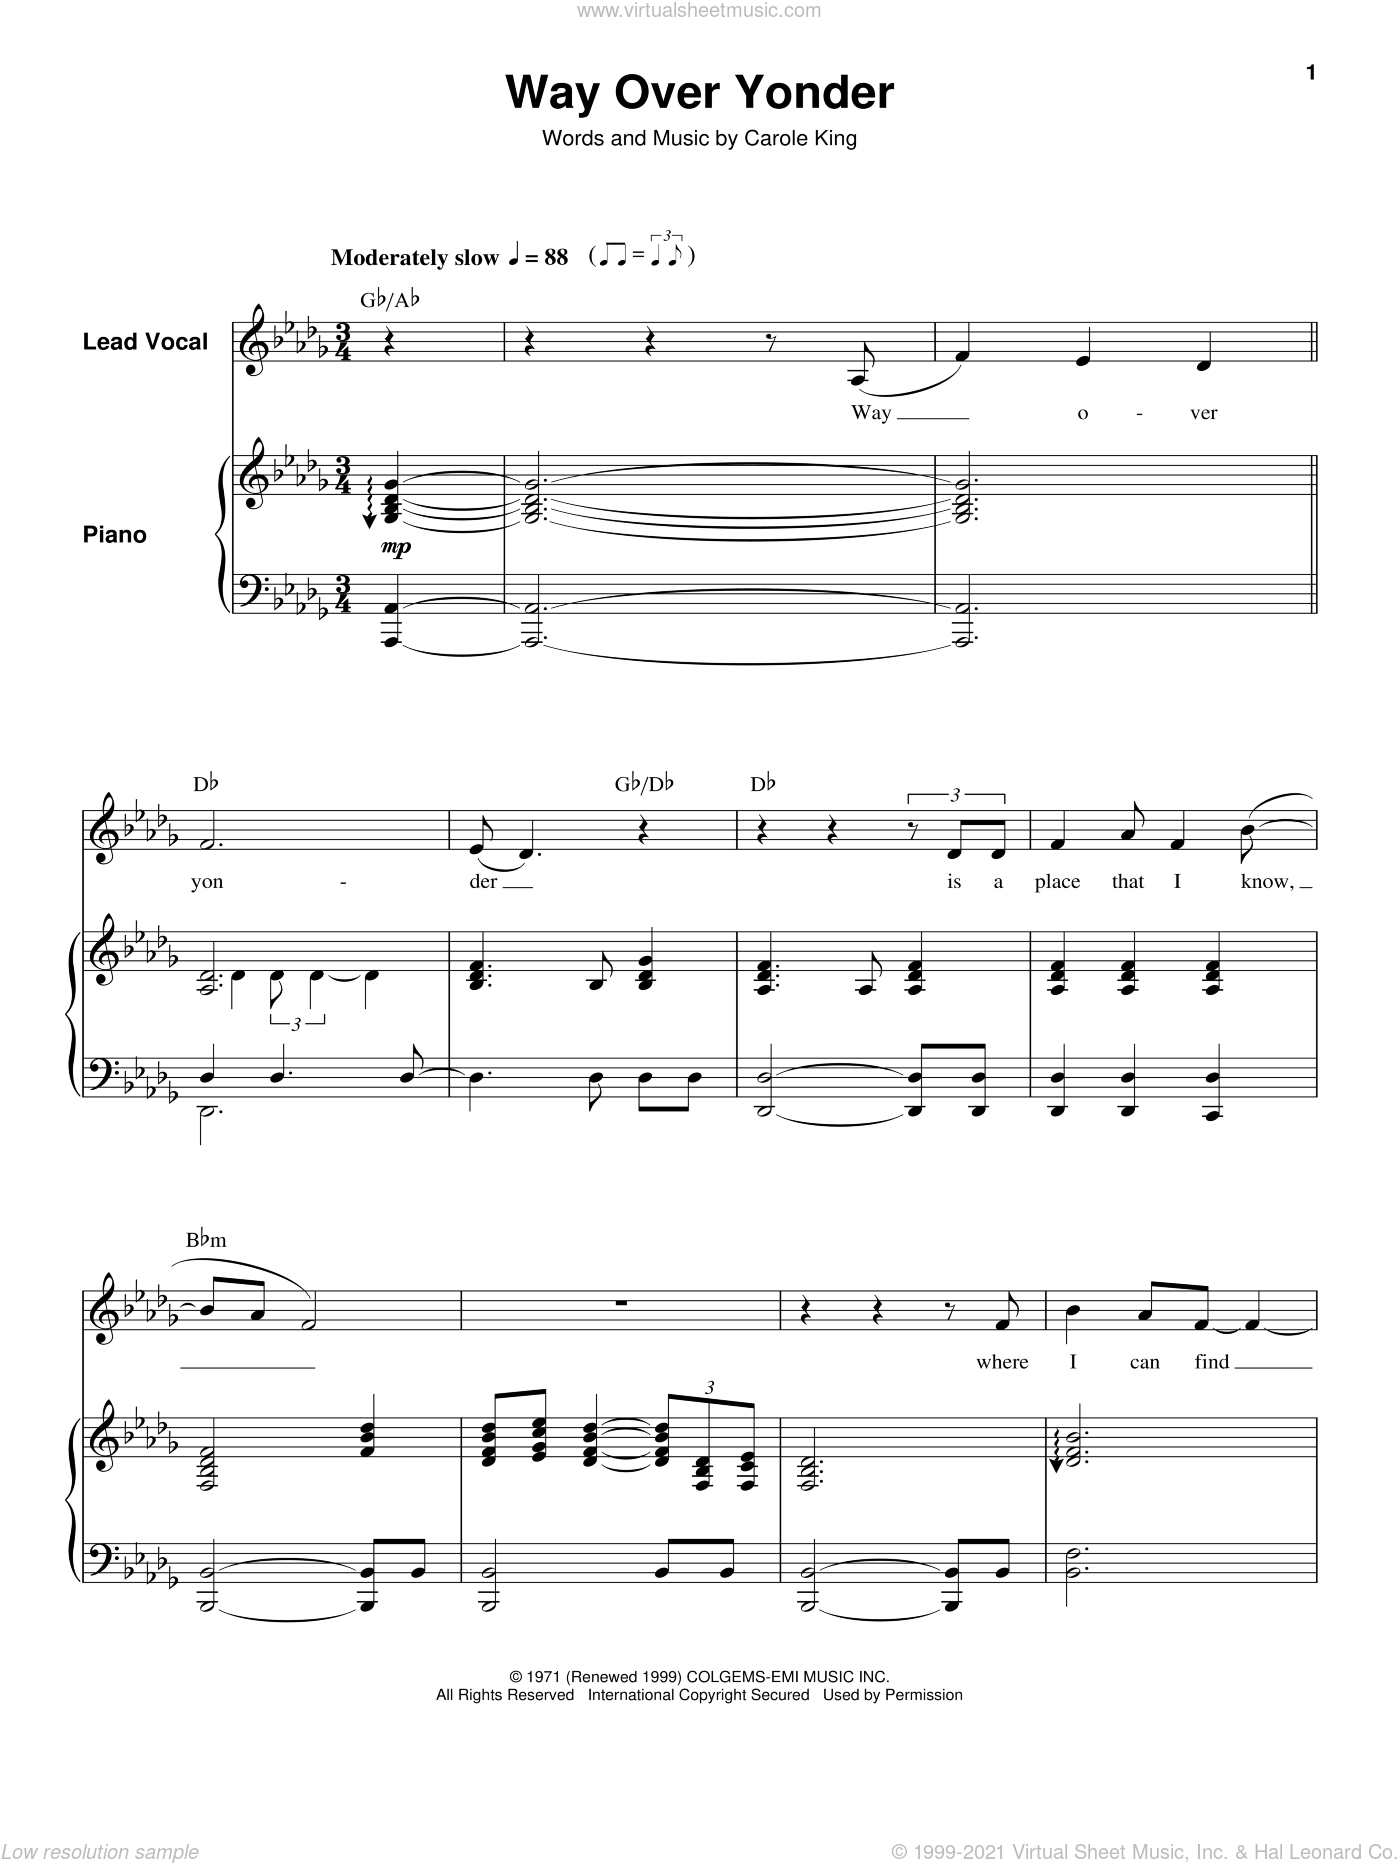 Way Over Yonder sheet music for keyboard or piano by Carole King